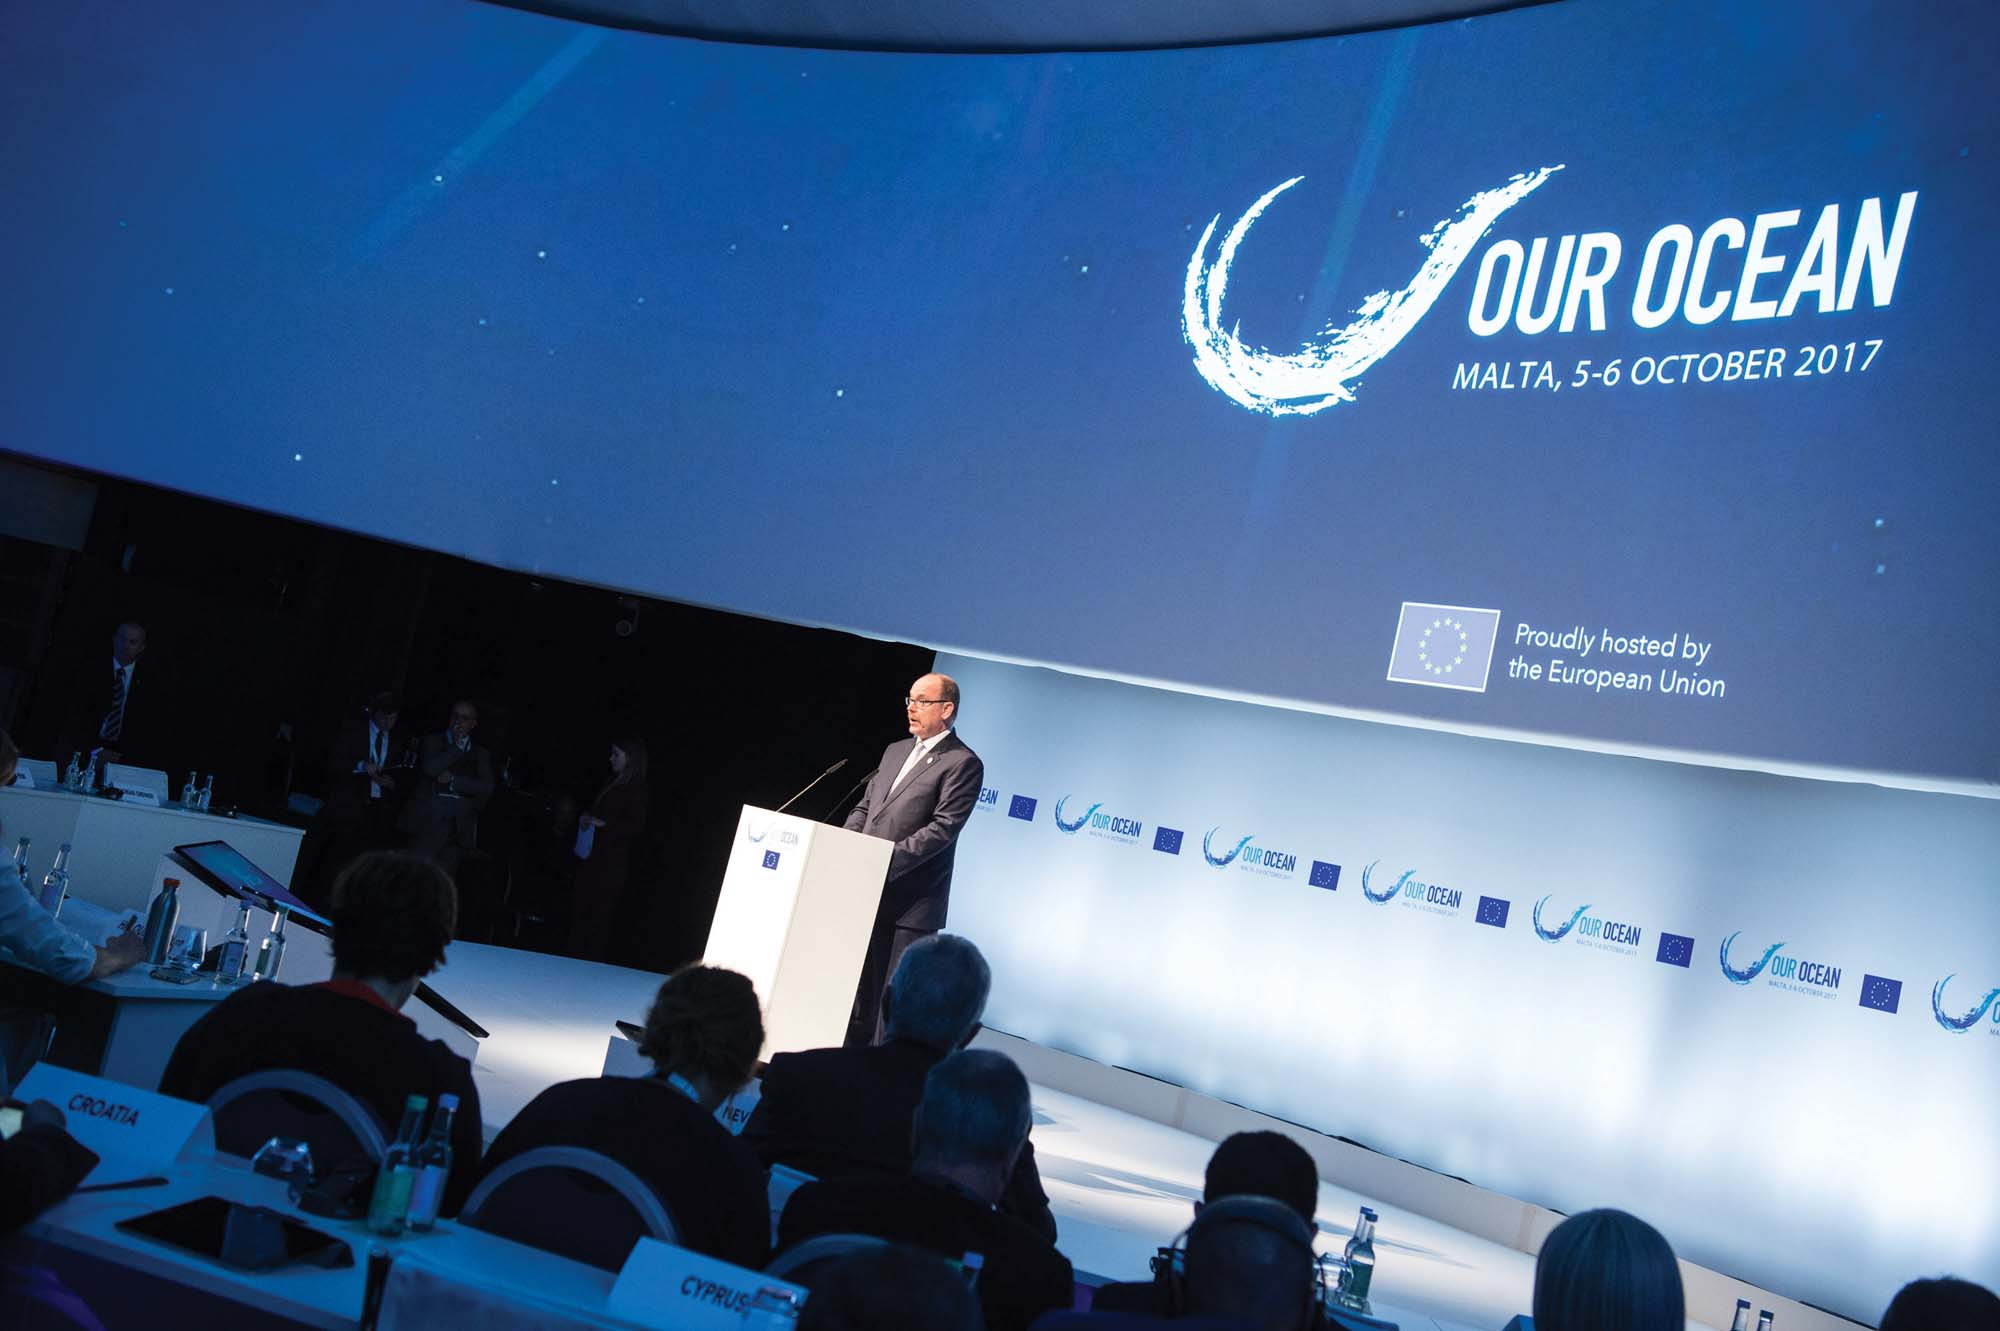 Prince Albert II was invited to speak at Our Ocean 2017 in Malta to inspire a new generation of leaders, entrepreneurs and scientists working towards a sustainably managed ocean; Plymouth University's Marine Protected Areas project has been supported by the Prince Albert II of Monaco Foundation since 2014 (photo by Prince's Palace of Monaco)